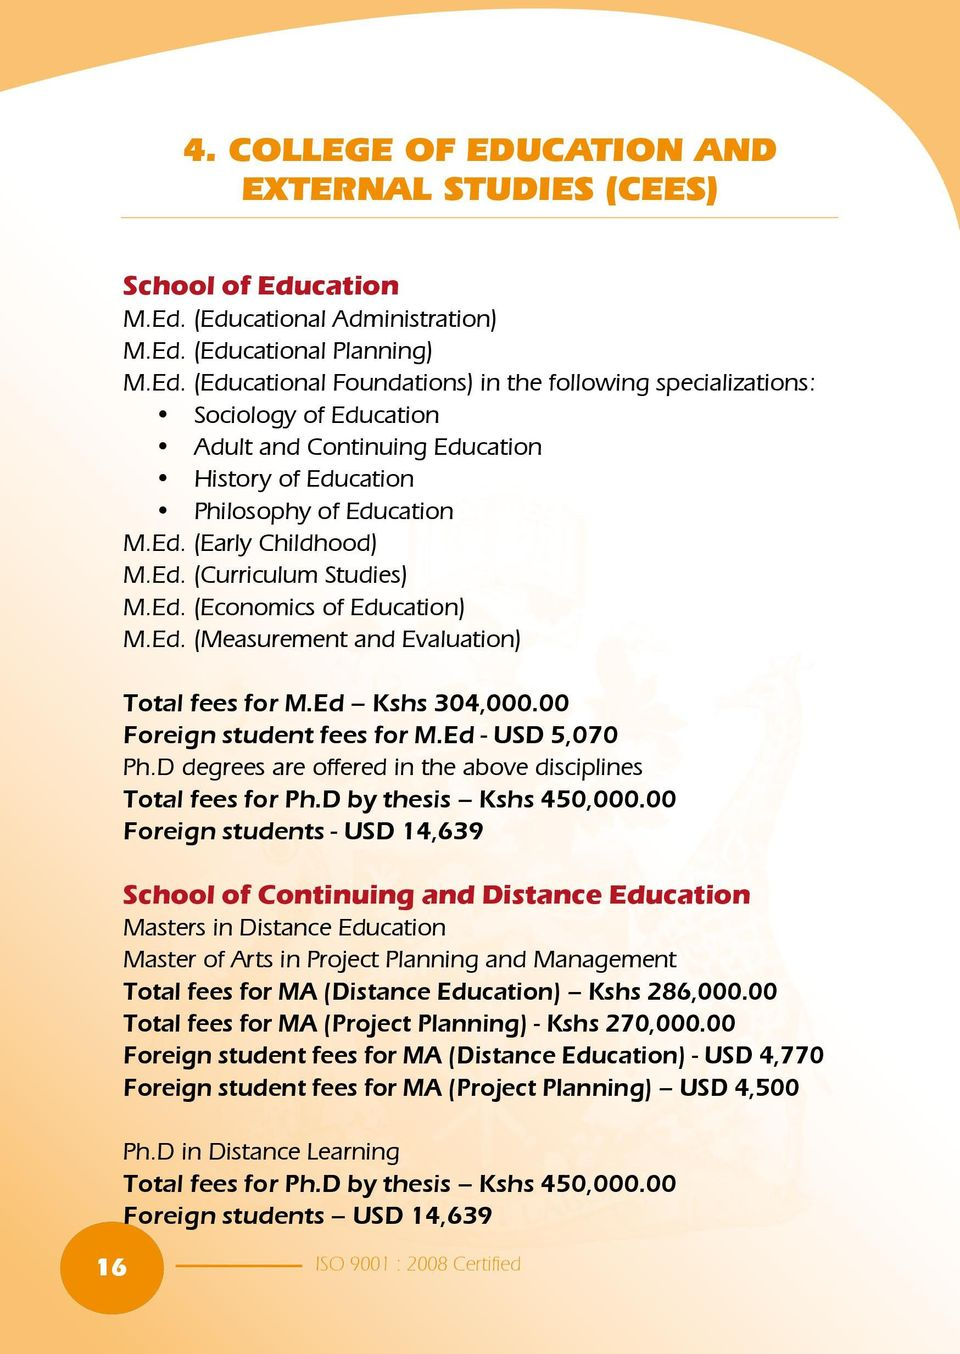 Ed. (Early Childhood) M.Ed. (Curriculum Studies) M.Ed. (Economics of Education) M.Ed. (Measurement and Evaluation) Total fees for M.Ed Kshs 304,000.00 Foreign student fees for M.Ed - USD 5,070 Ph.